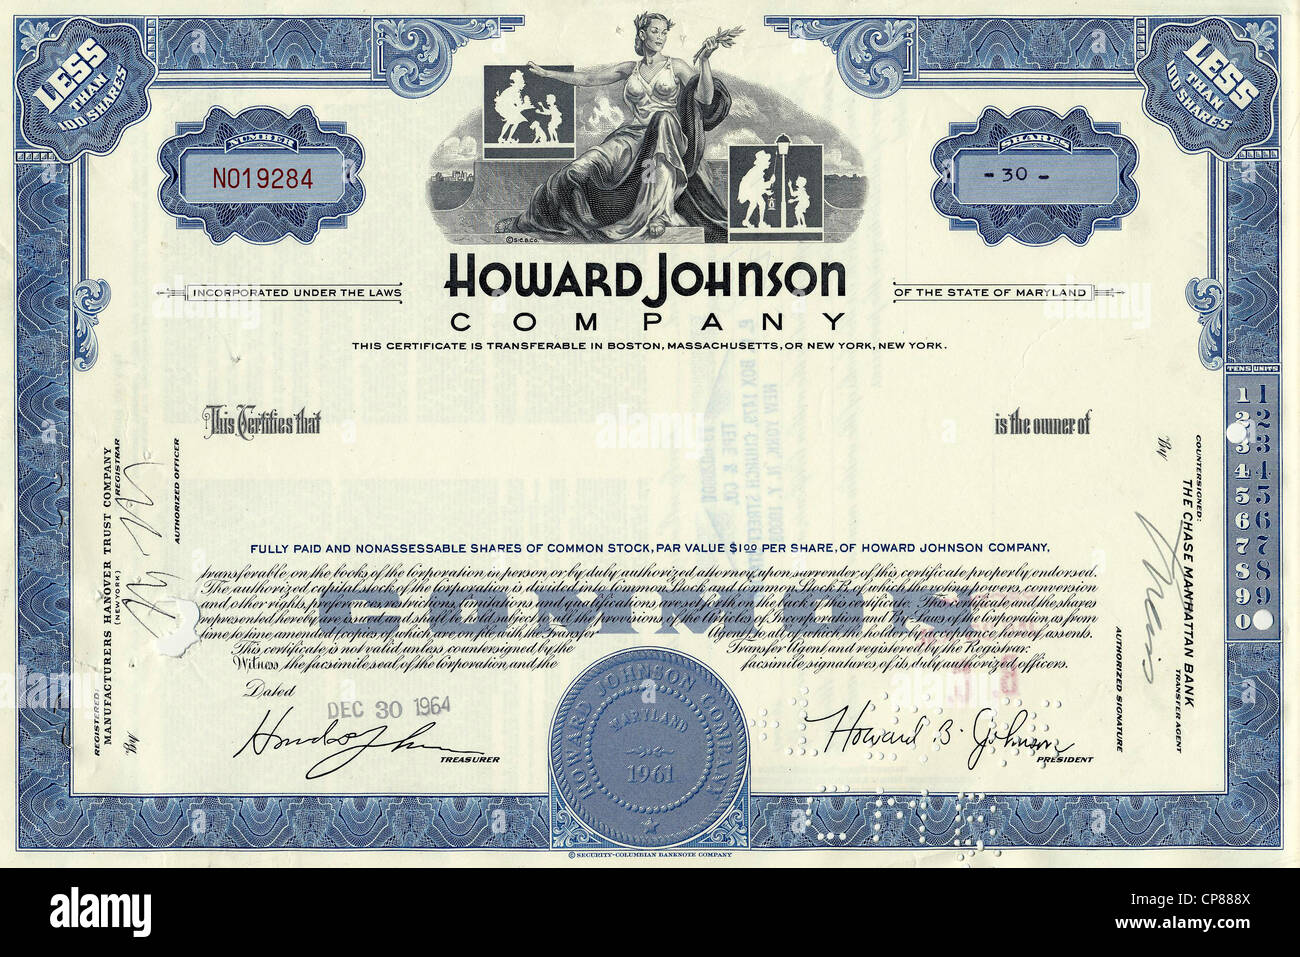 Historical stock certificate, restaurant and hotel chain, Howard Johnson Company, 1964, Maryland, USA - Stock Image